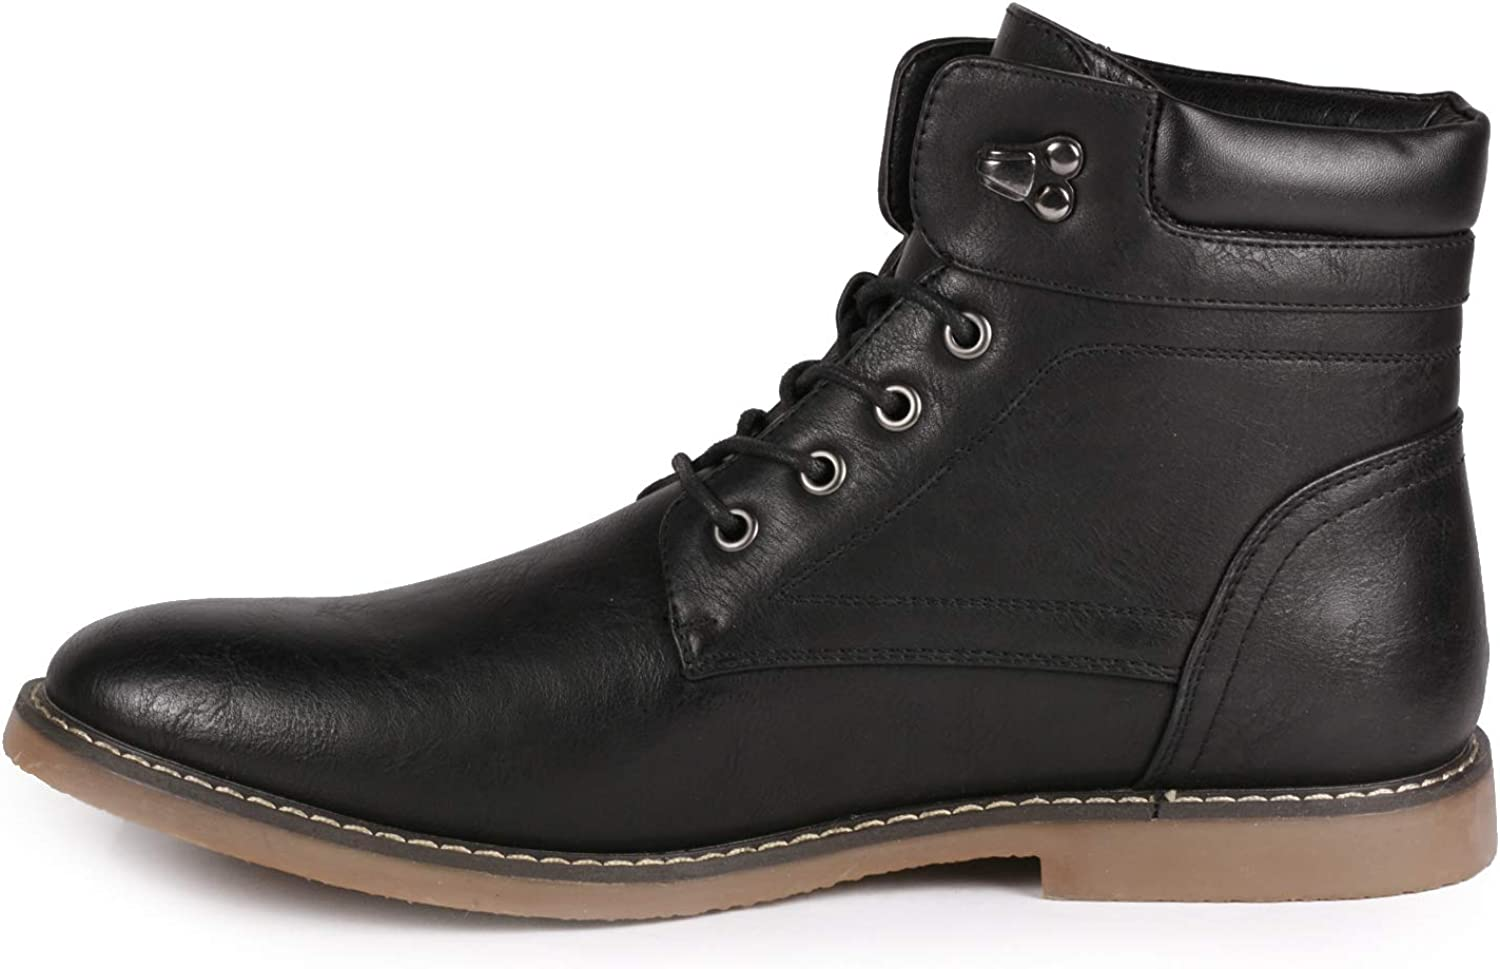 Metrocharm MC129 Men's Lace up Casual Fashion Ankle Oxford Boot